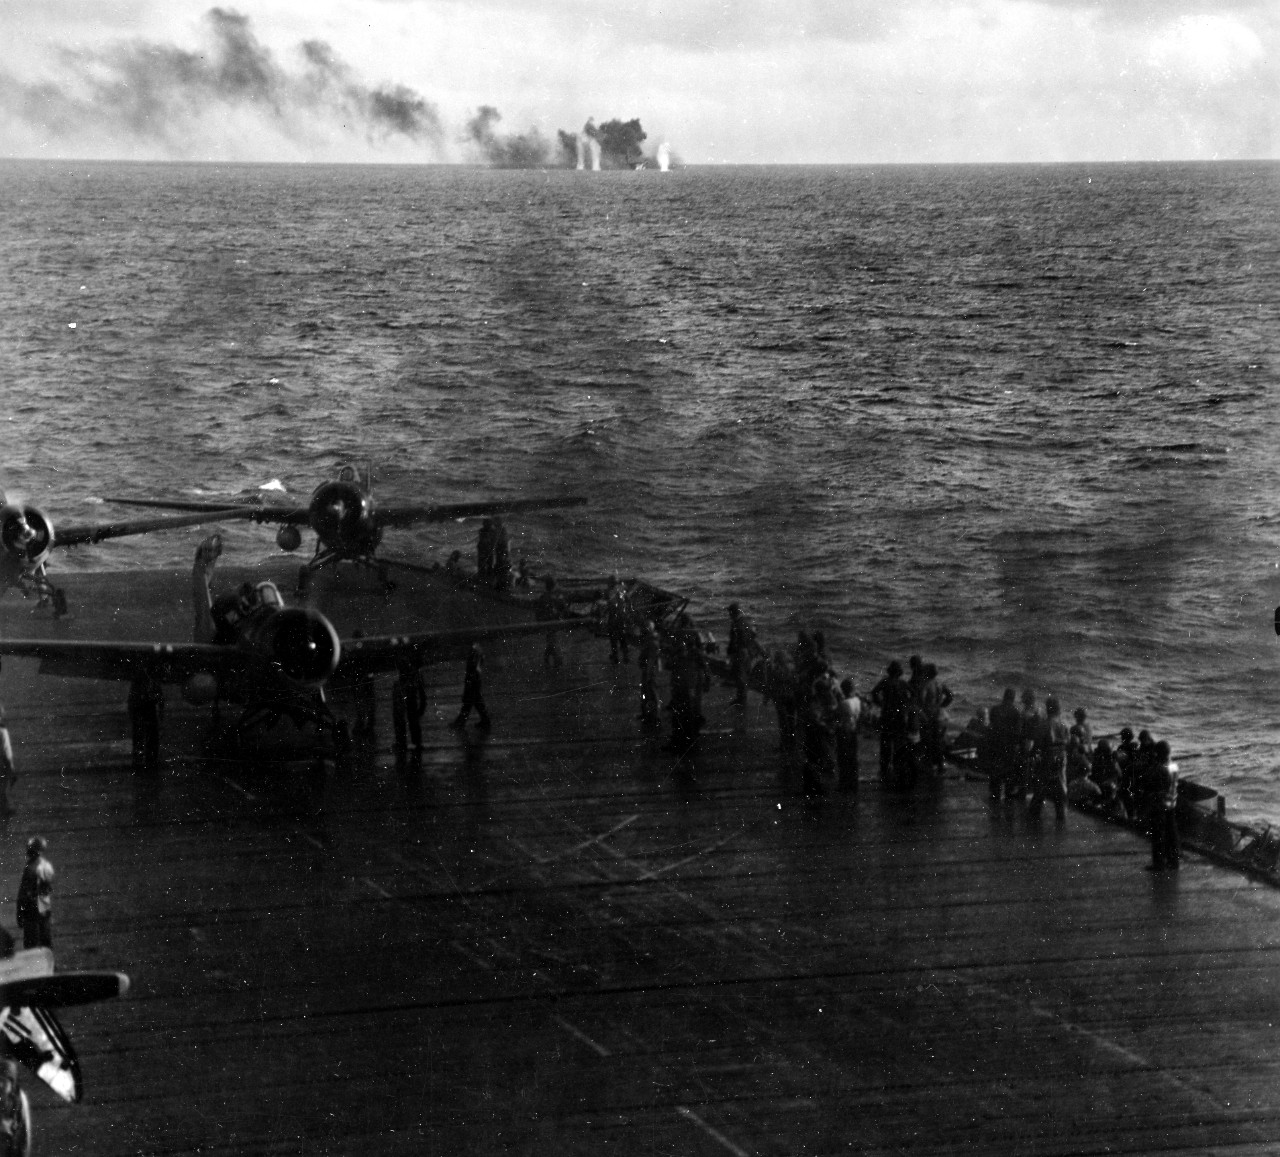 In this chilling image captured by a photographer on board sister ship Kitkun Bay, Fanshaw Bay is straddled by shells from a Japanese battleship (either Kongo or Haruna) off Samar, 25 October 1944, while purposeful activity proceeds ahead on the flight deck in the foreground, with three FM-2s being prepared for launching. (U.S. Navy Photograph 80-G-287492, National Archives and Records Administration, Still Pictures Division, College Park, Md.)